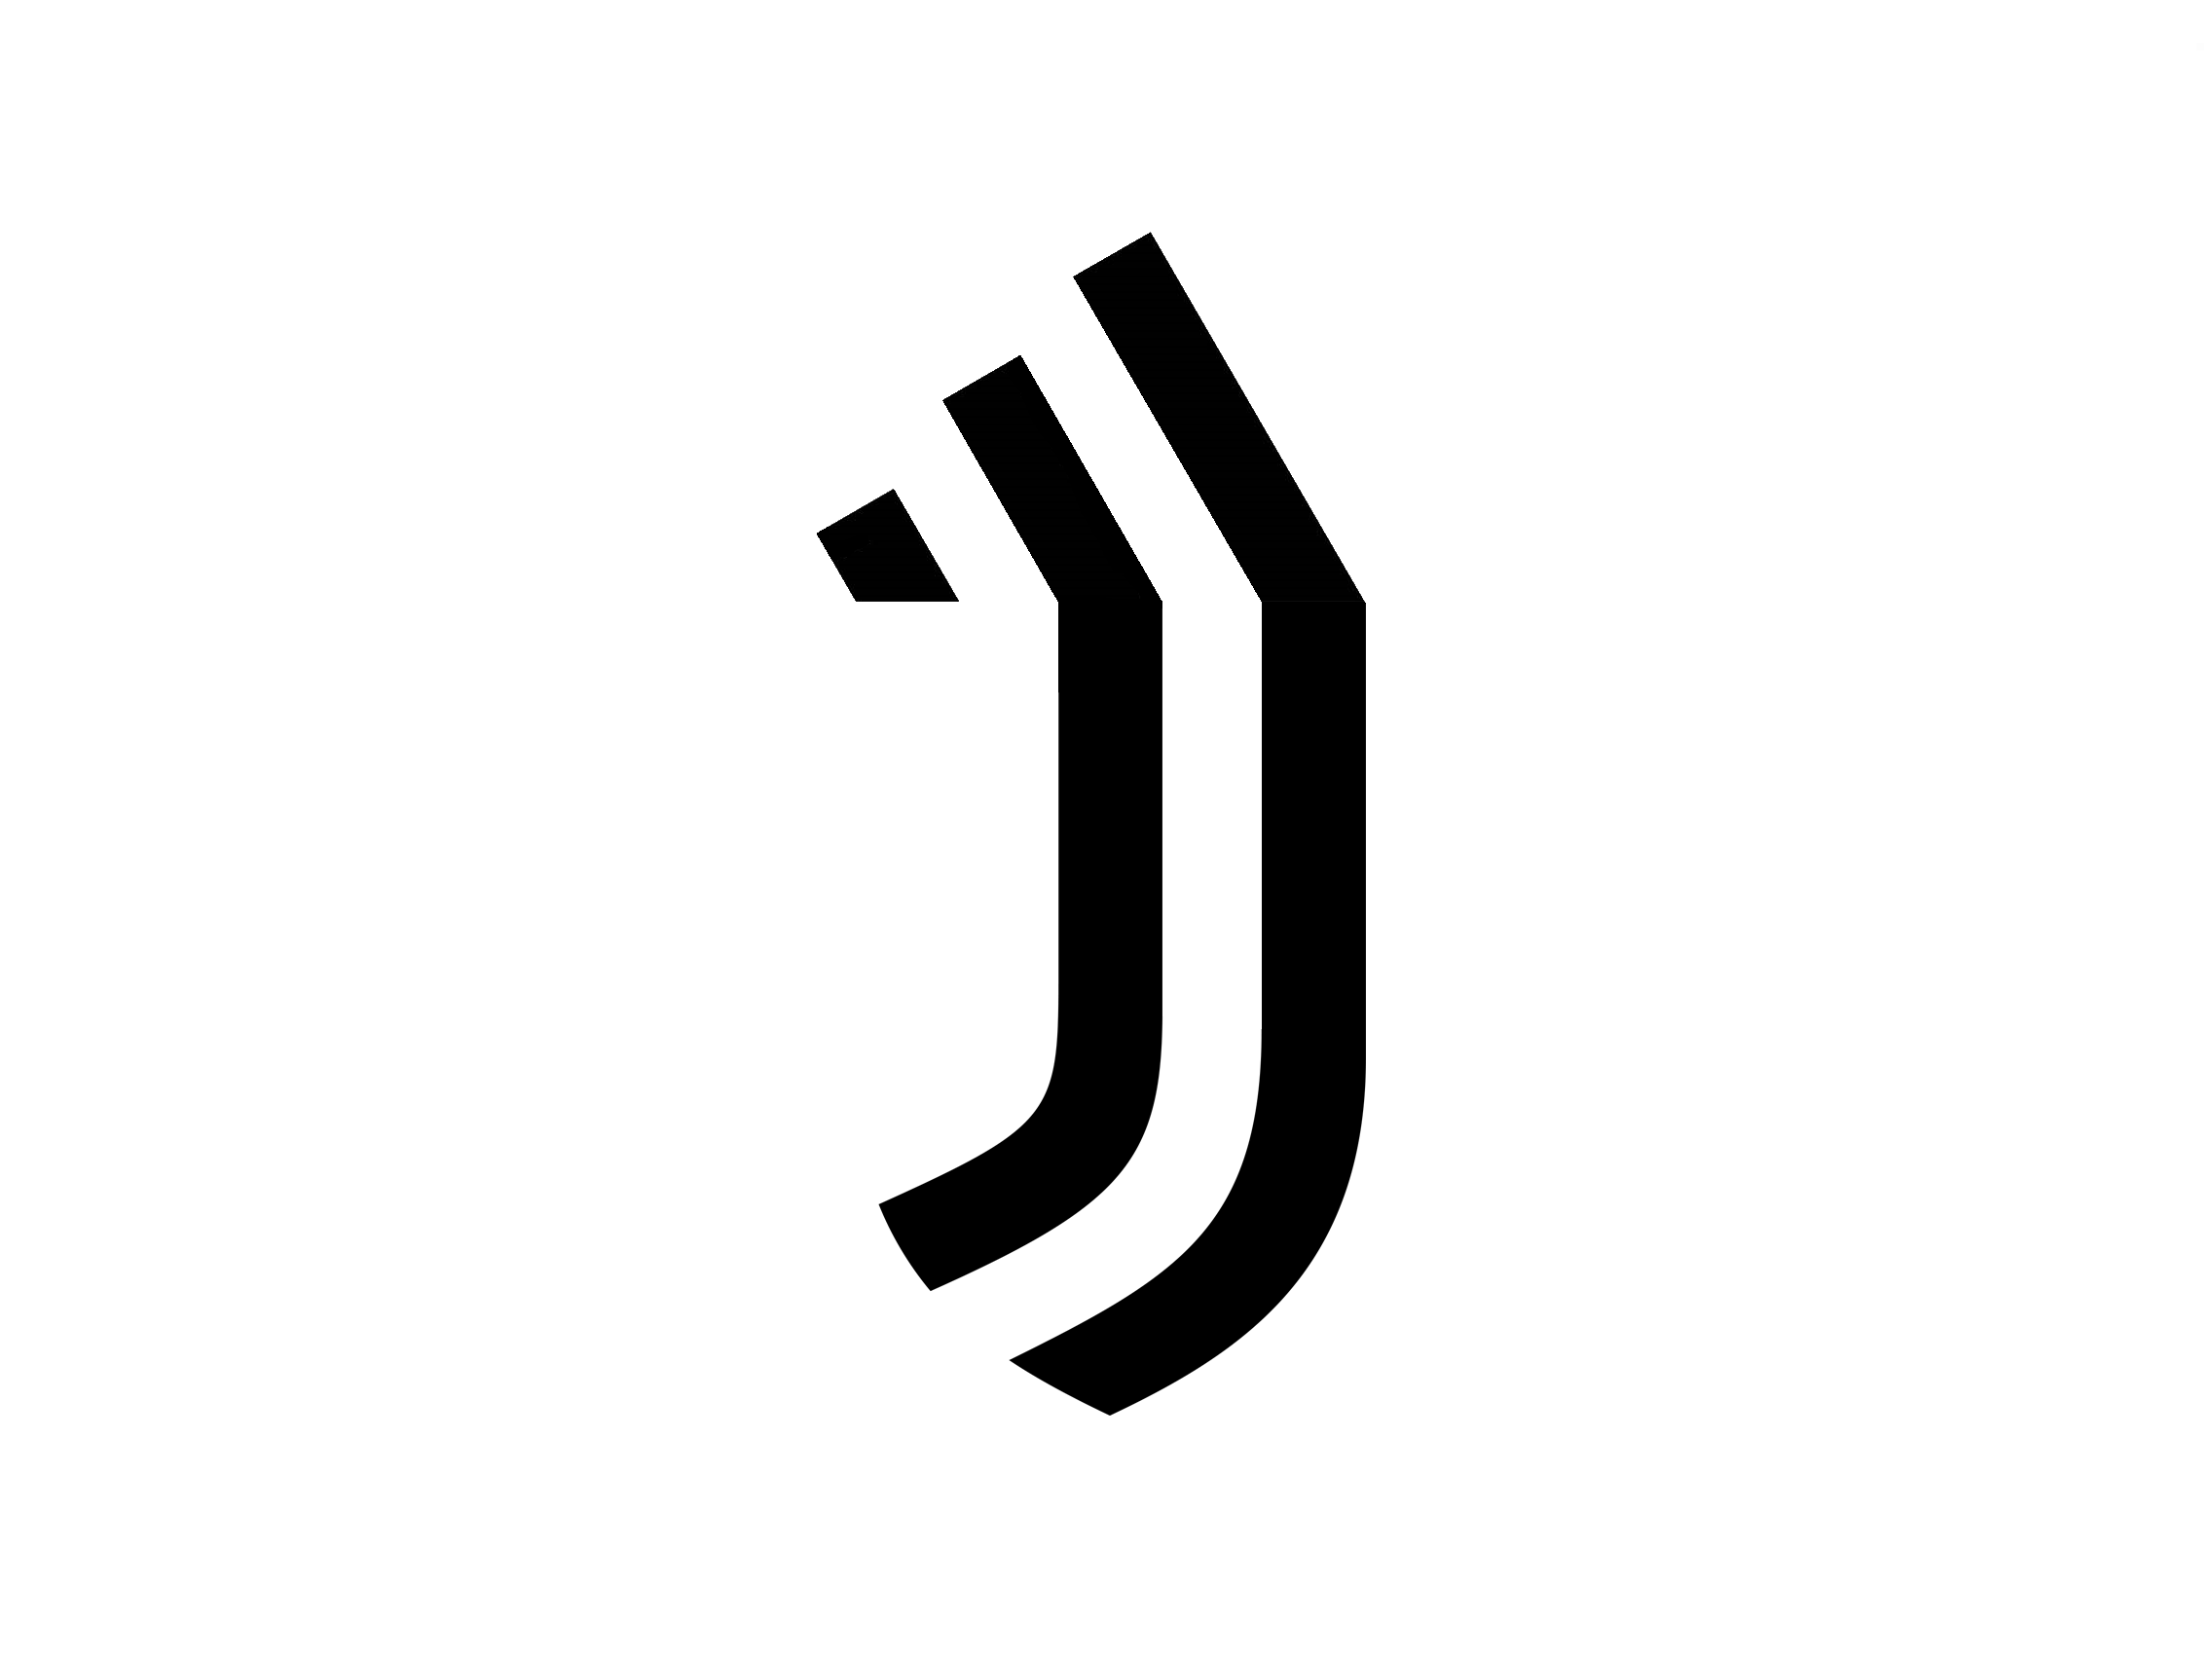 what if adidas logo merge with juventus logo if adidas logo merge with juventus logo